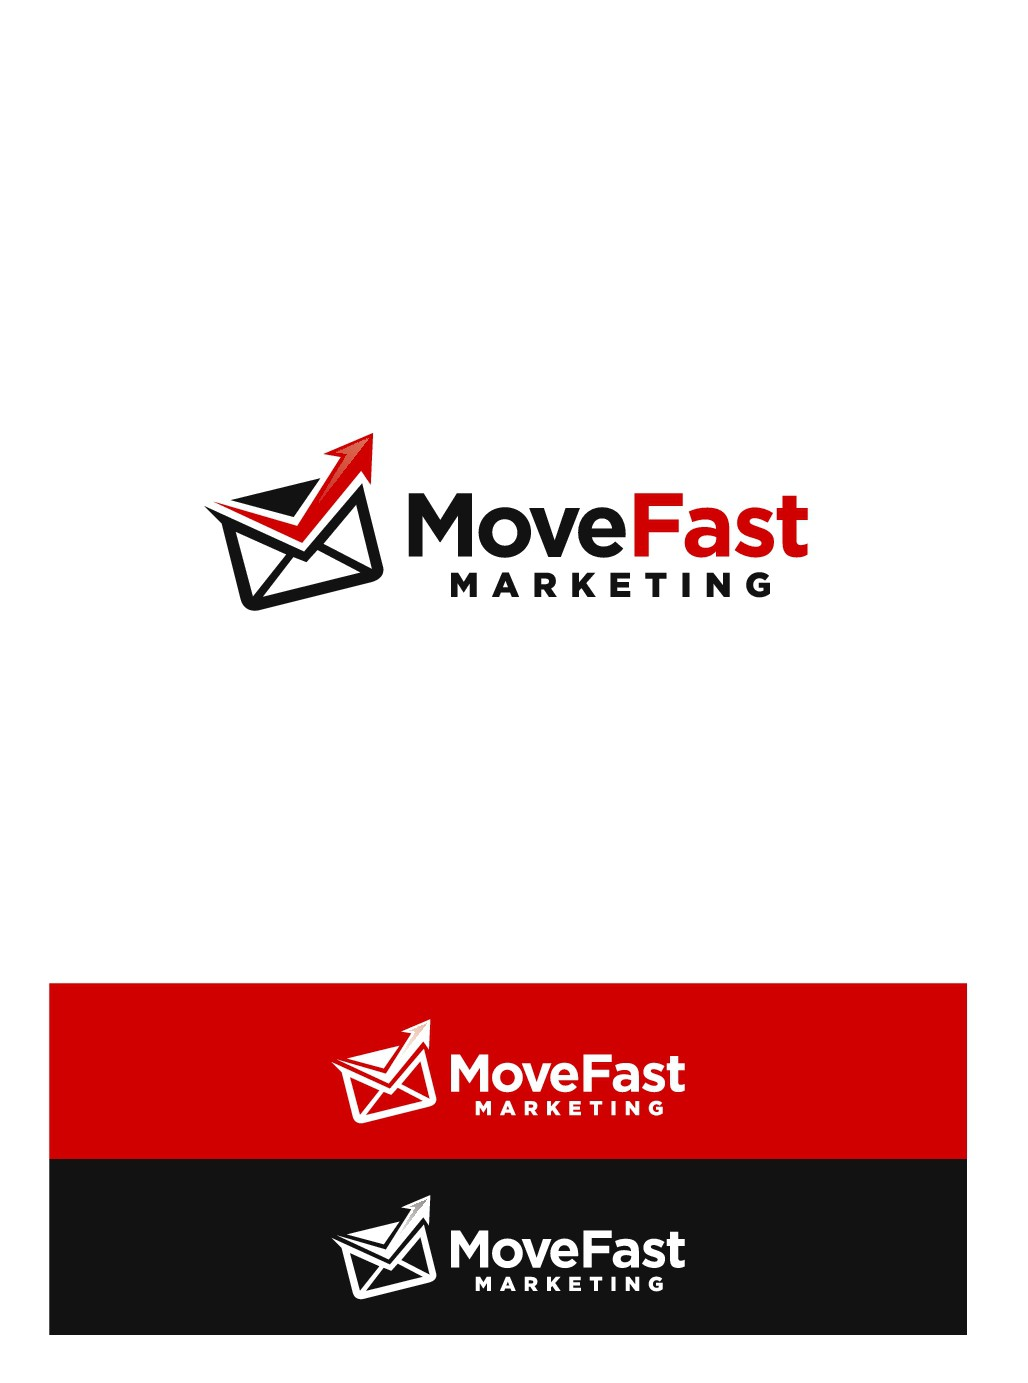 Design a logo for MoveFast Marketing